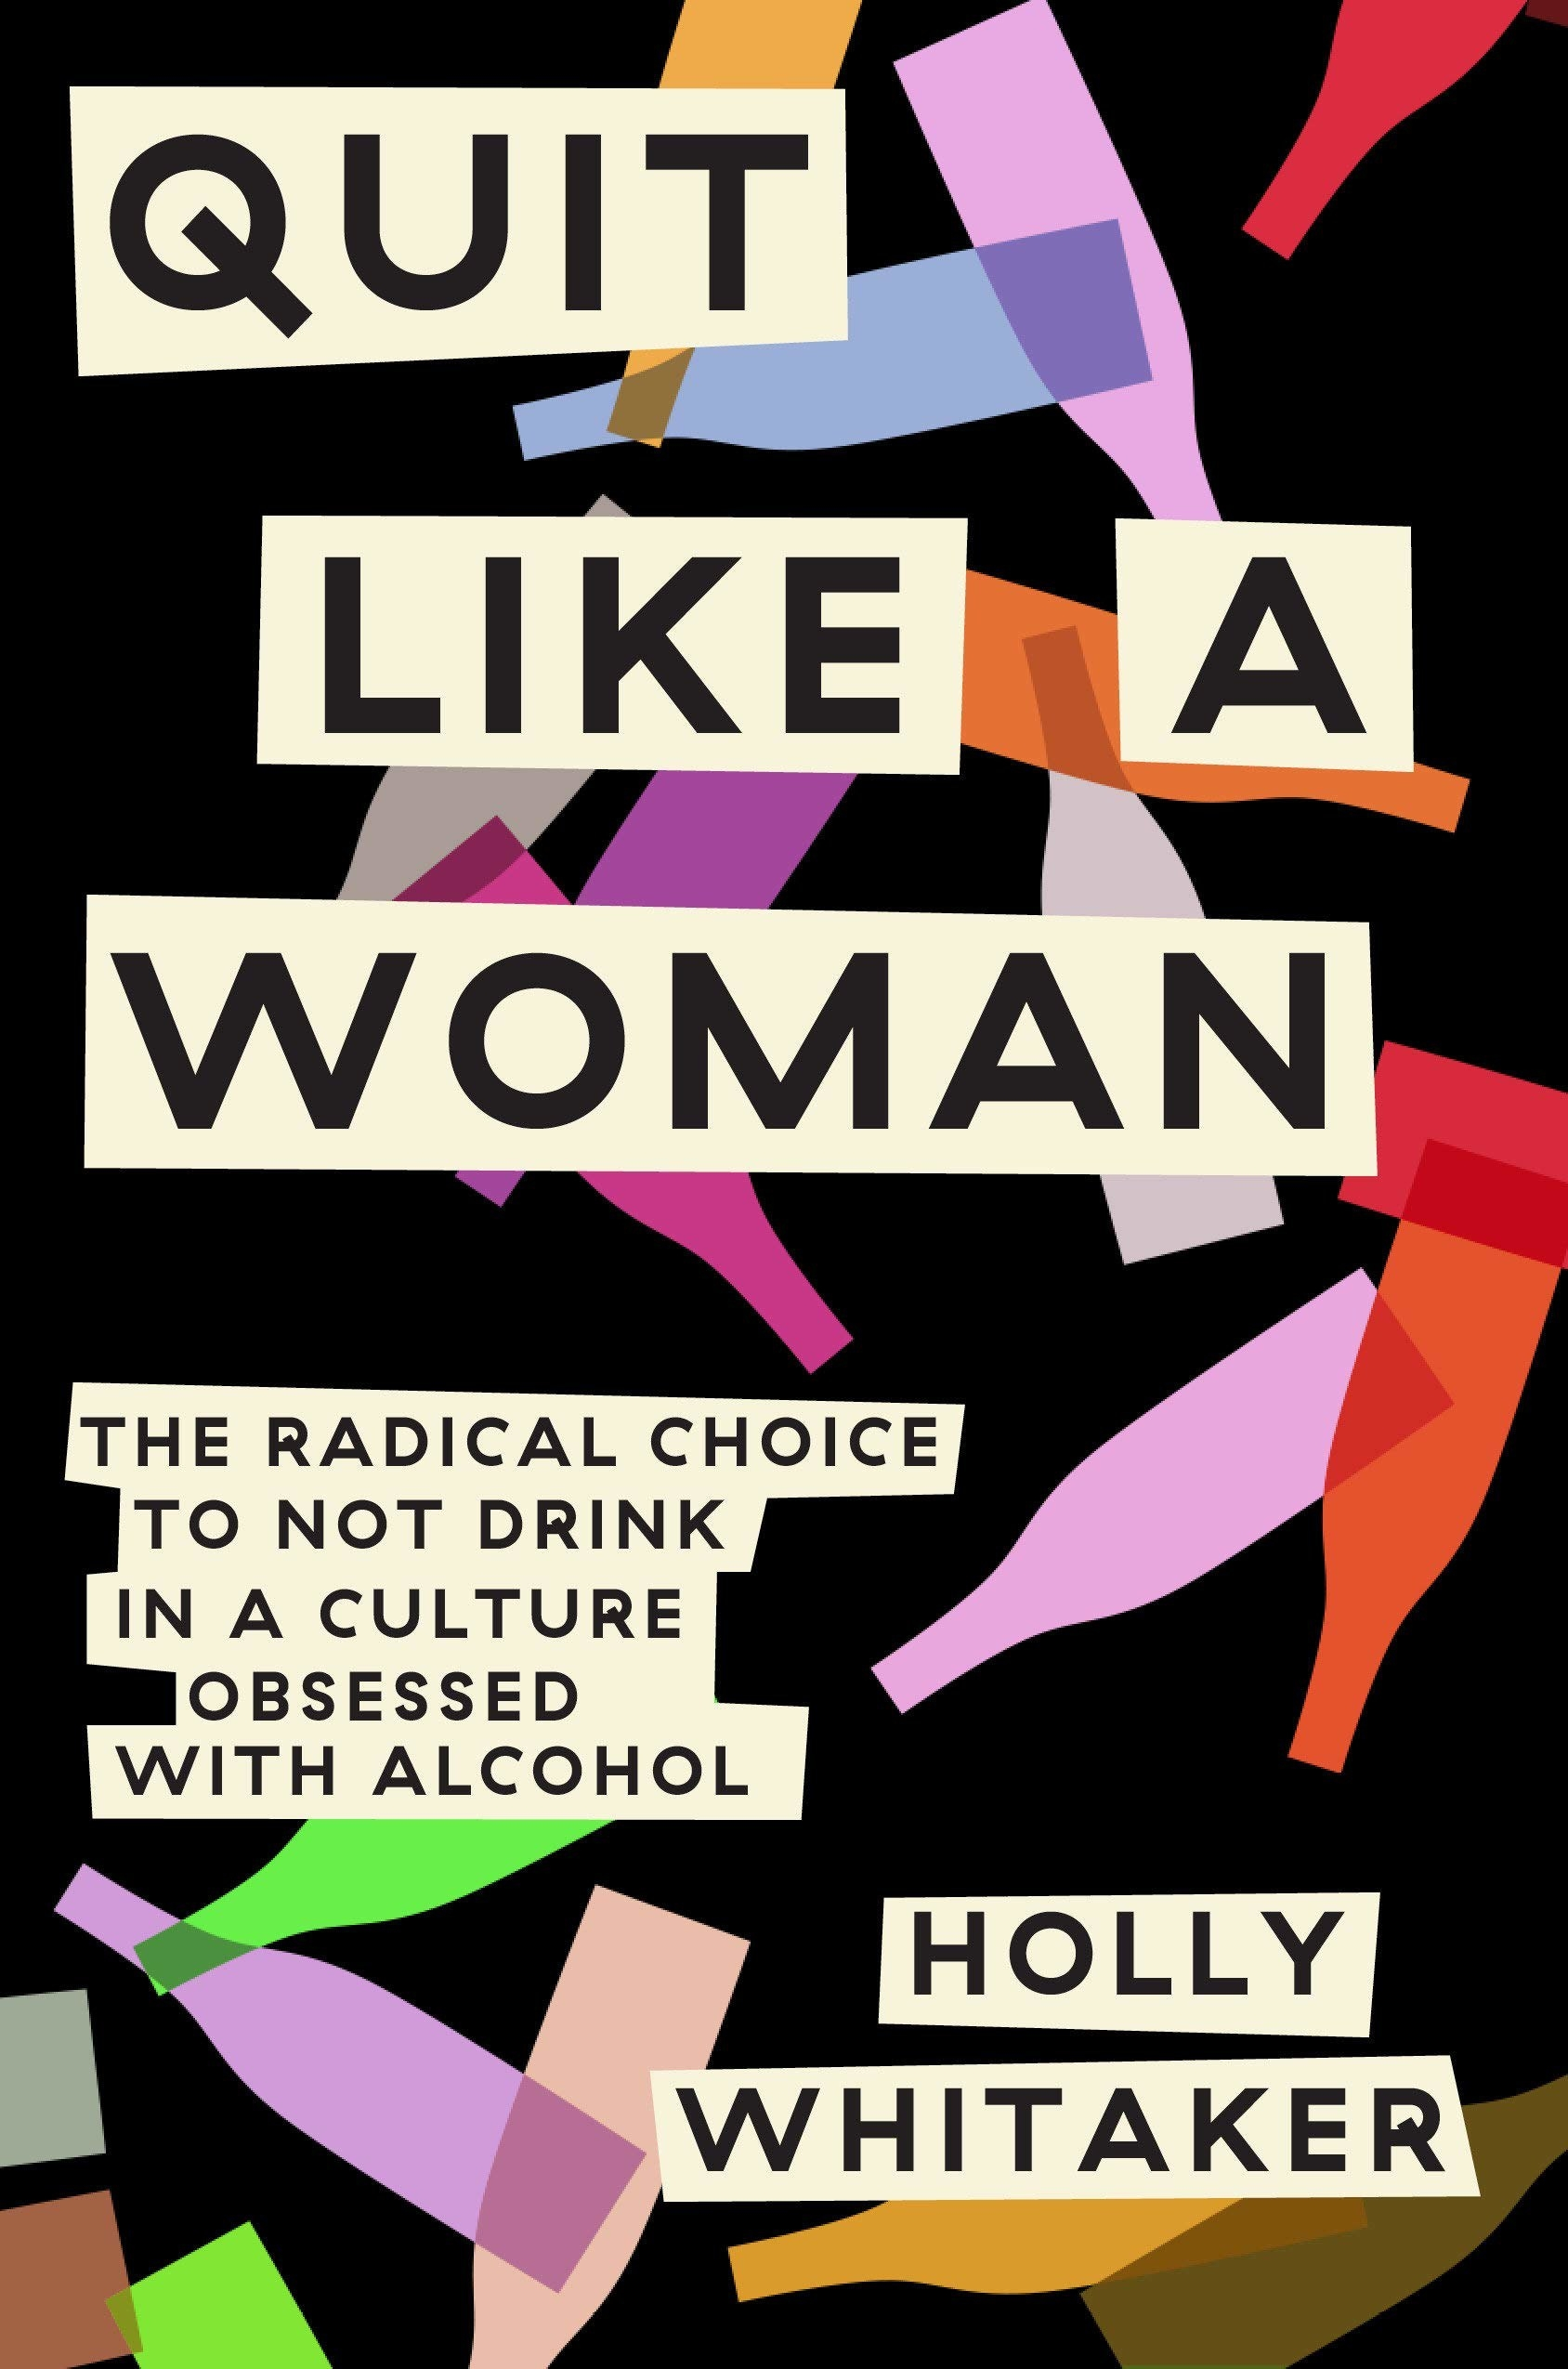 The cover of Quit Like a Woman by Holly Whitaker